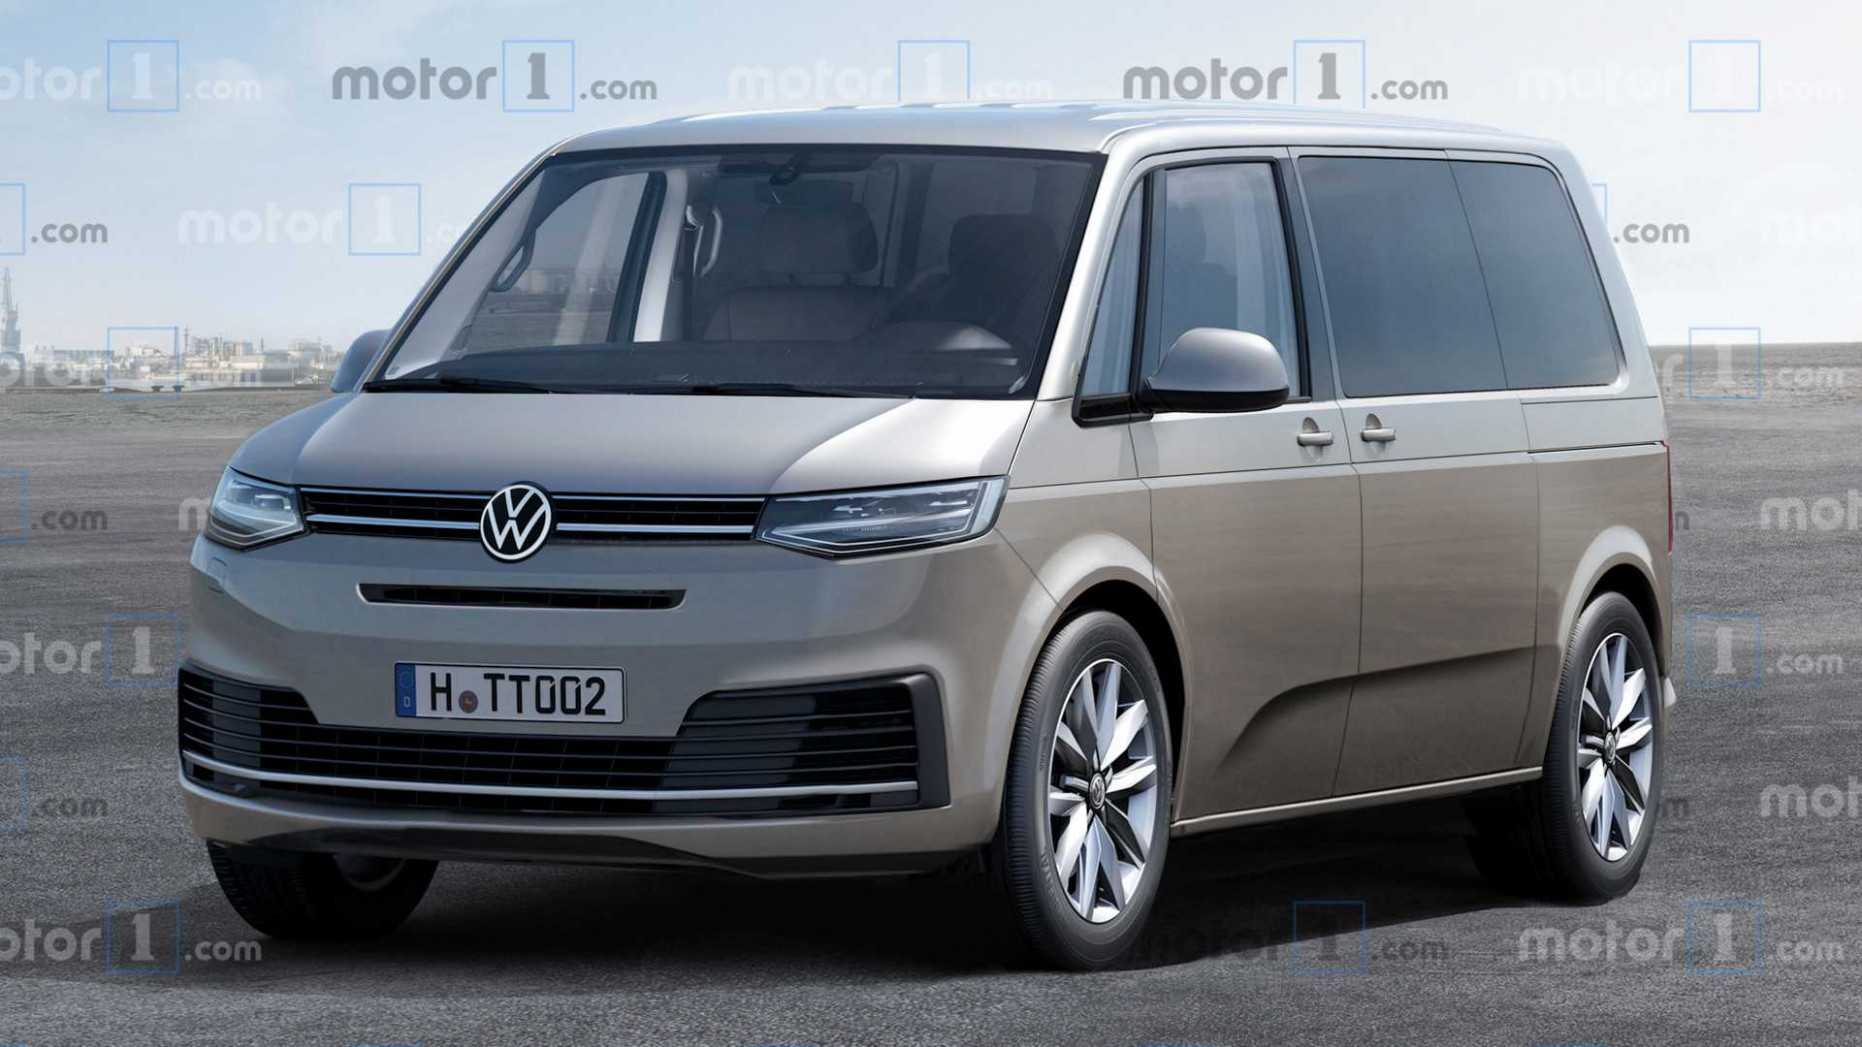 Wallpaper Volkswagen California 2022